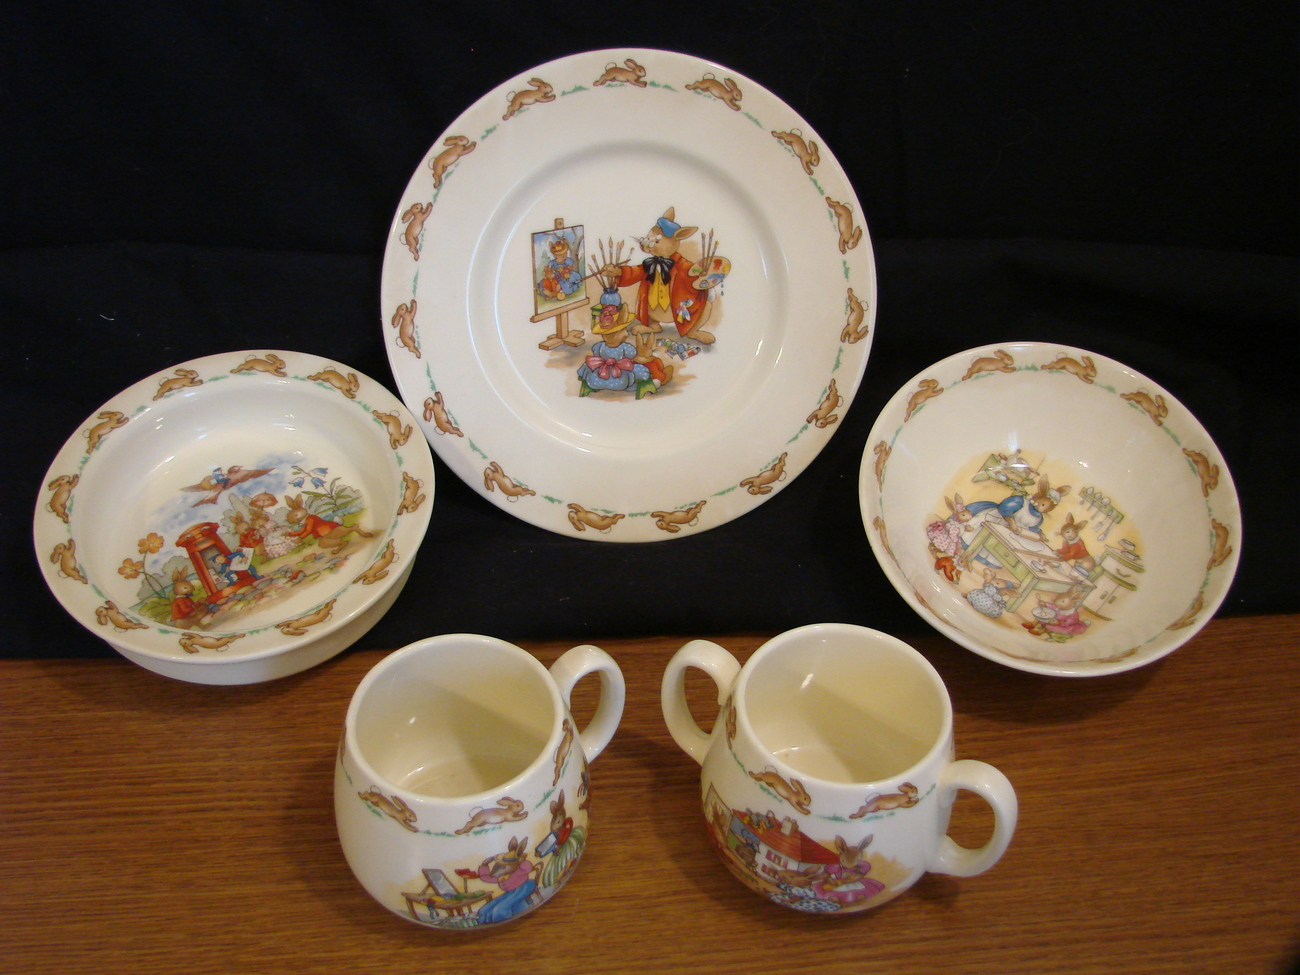 Royal Doulton Bunnykins - Set of 5 Dishes and Cups